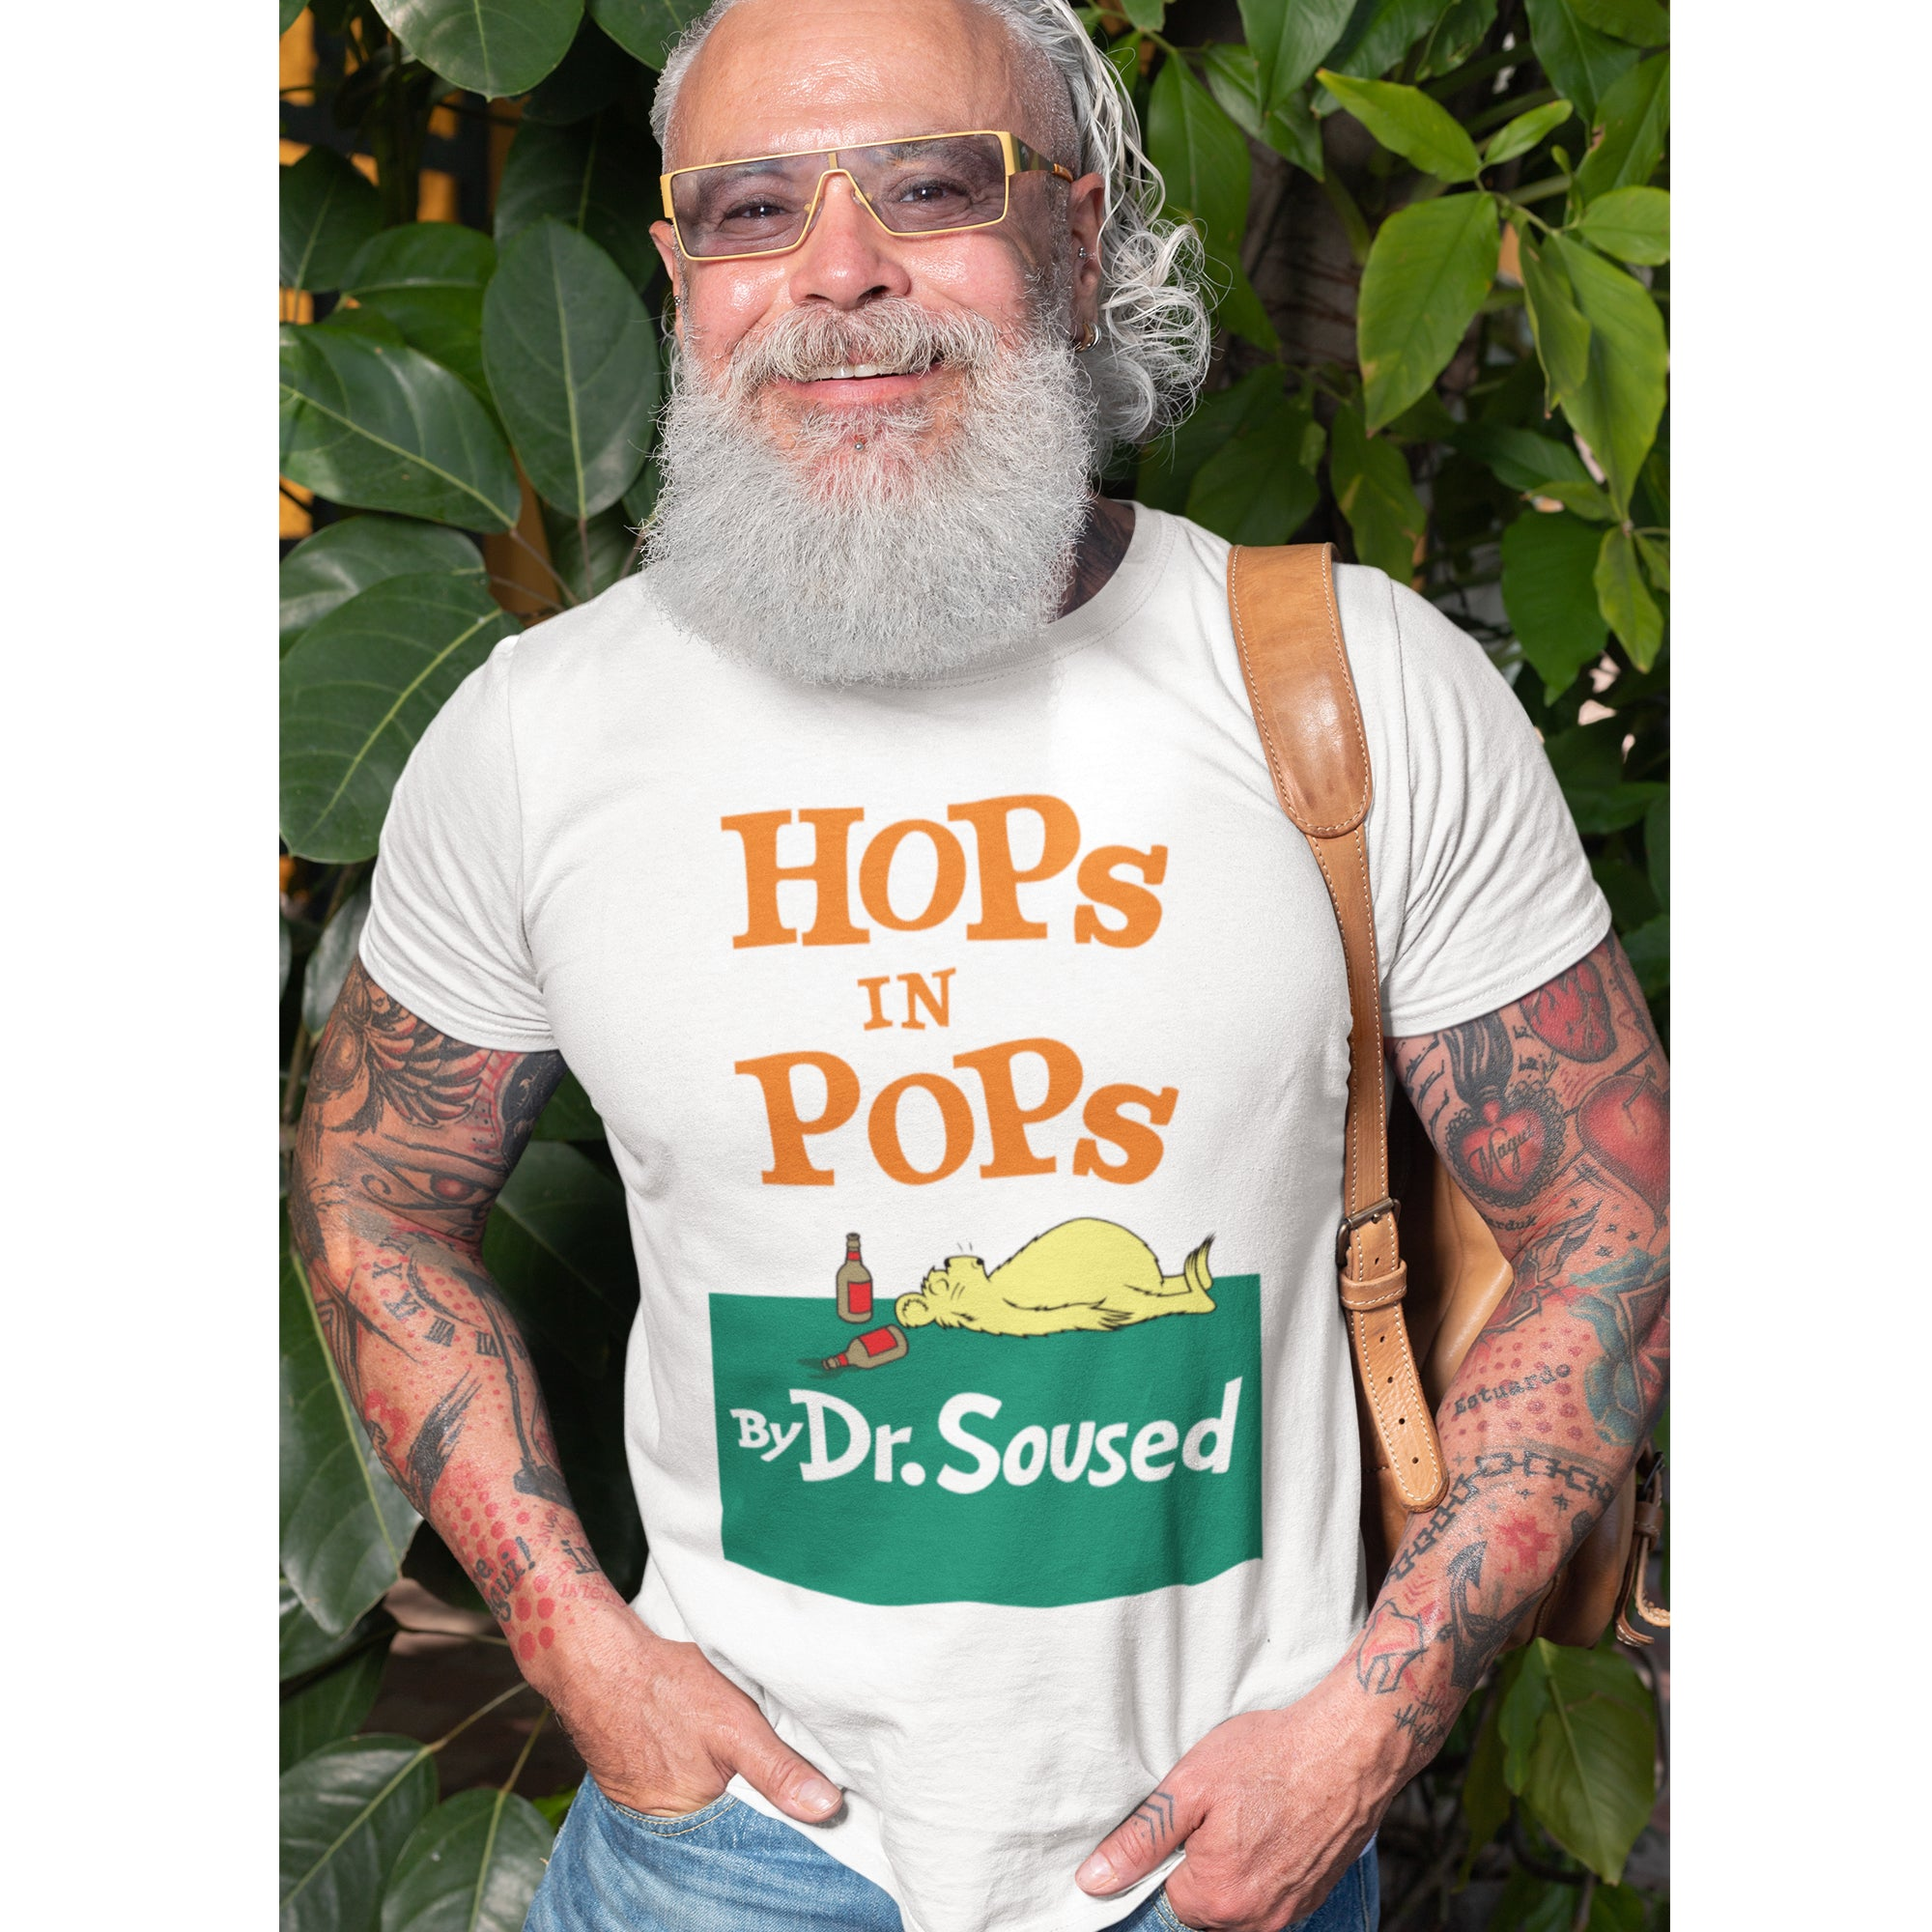 Hops in Pops Dr Soused Beer T-Shirt